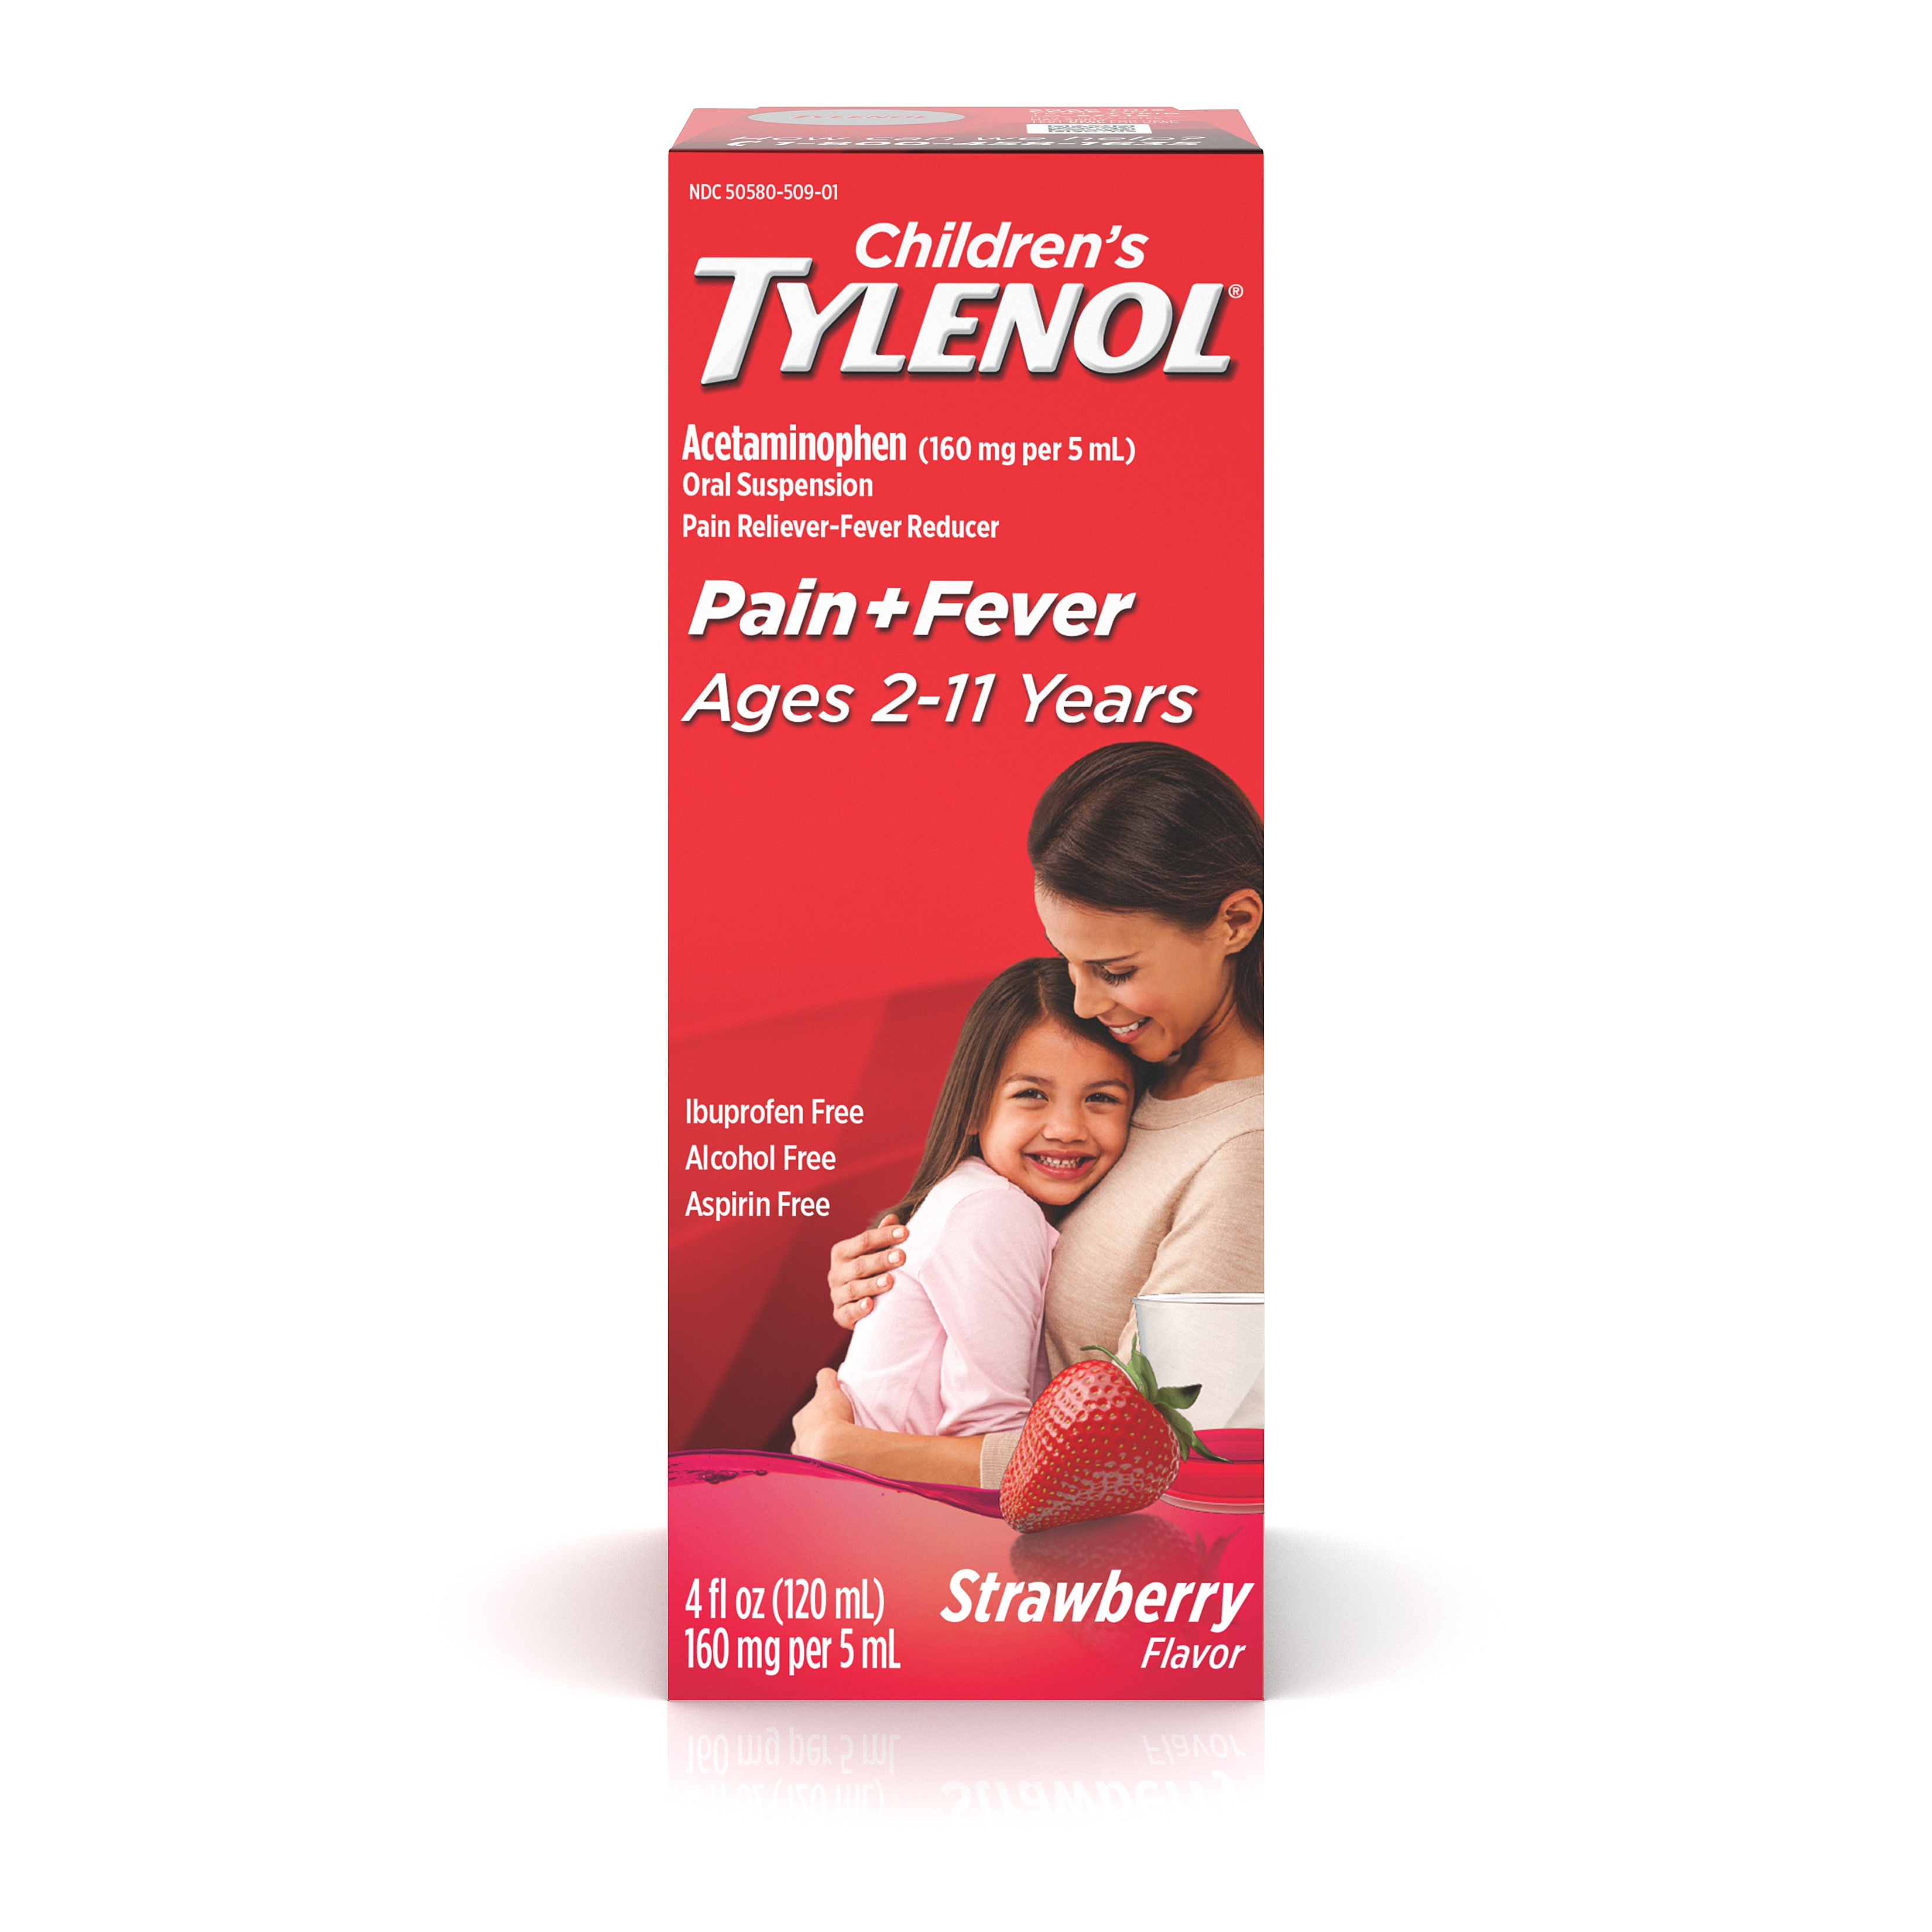 Children's Tylenol Oral Suspension, Fever Reducer and Pain Reliever, Strawberry, 4 fl oz